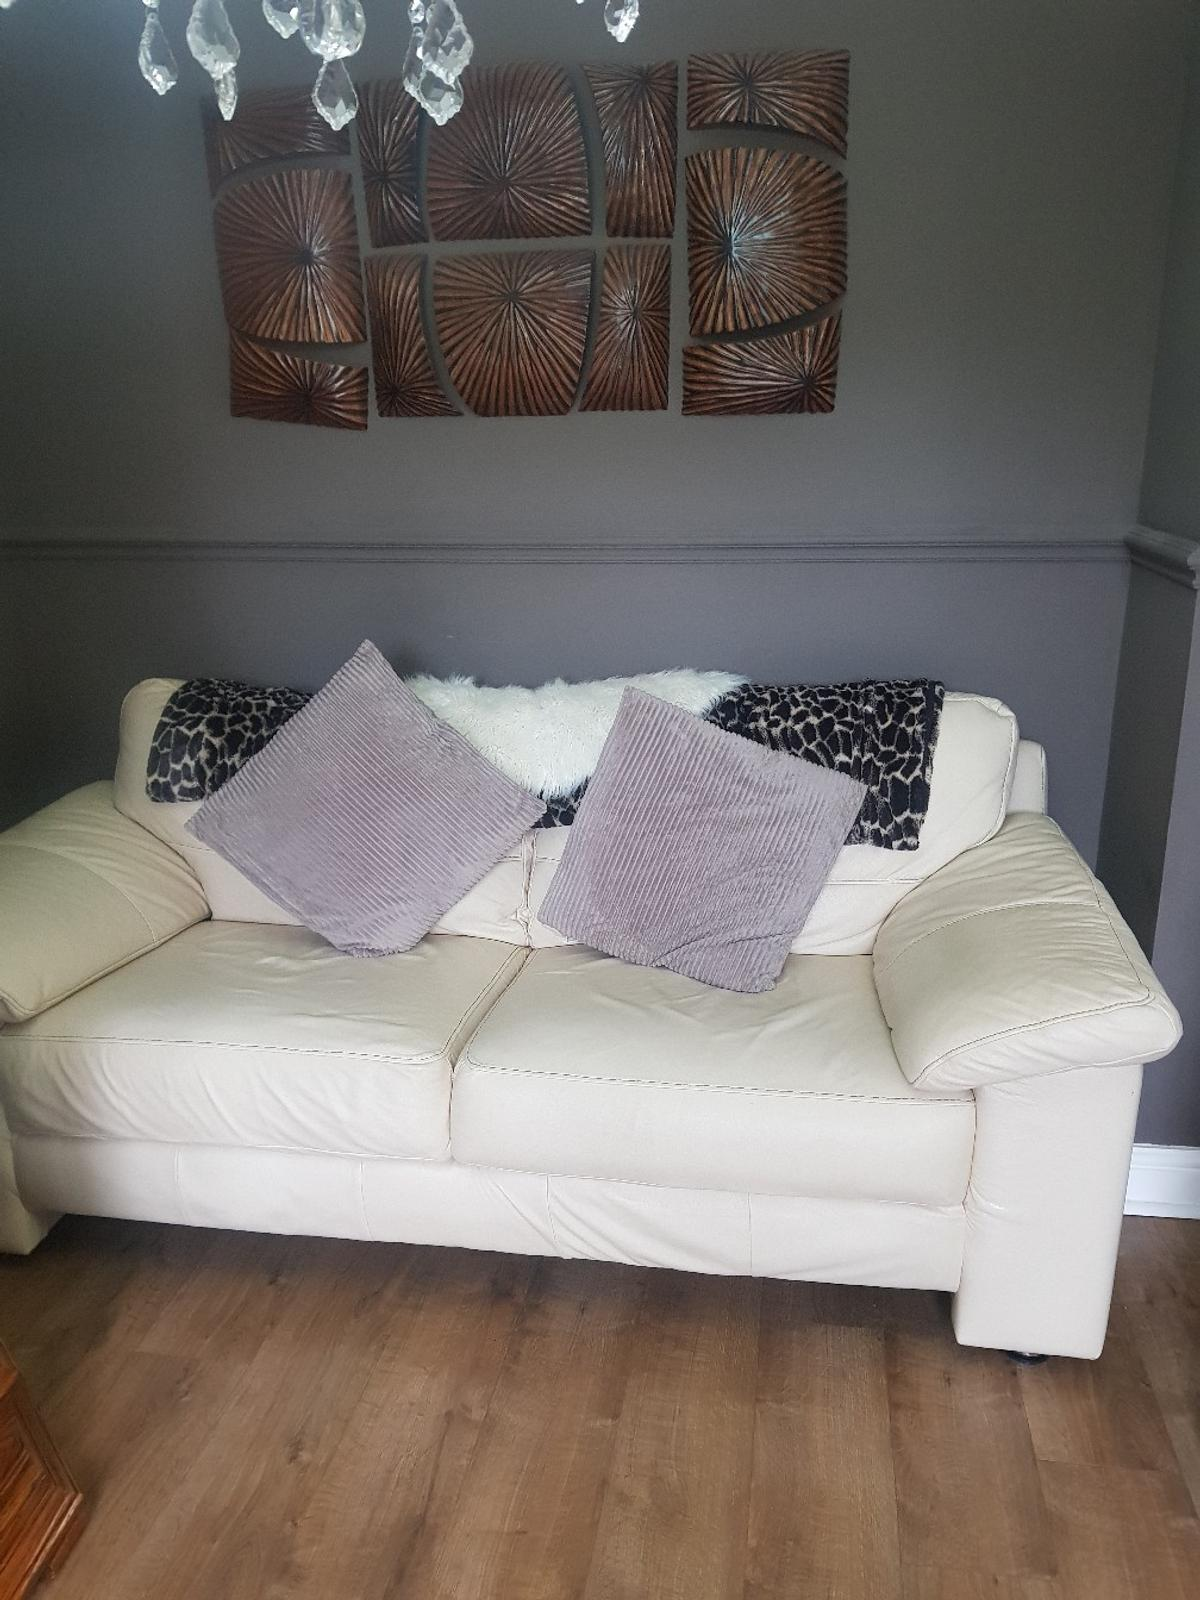 Awesome Rhino Leather Dfs 2 3 Seater Sofas In Cw7 Winsford For Ocoug Best Dining Table And Chair Ideas Images Ocougorg